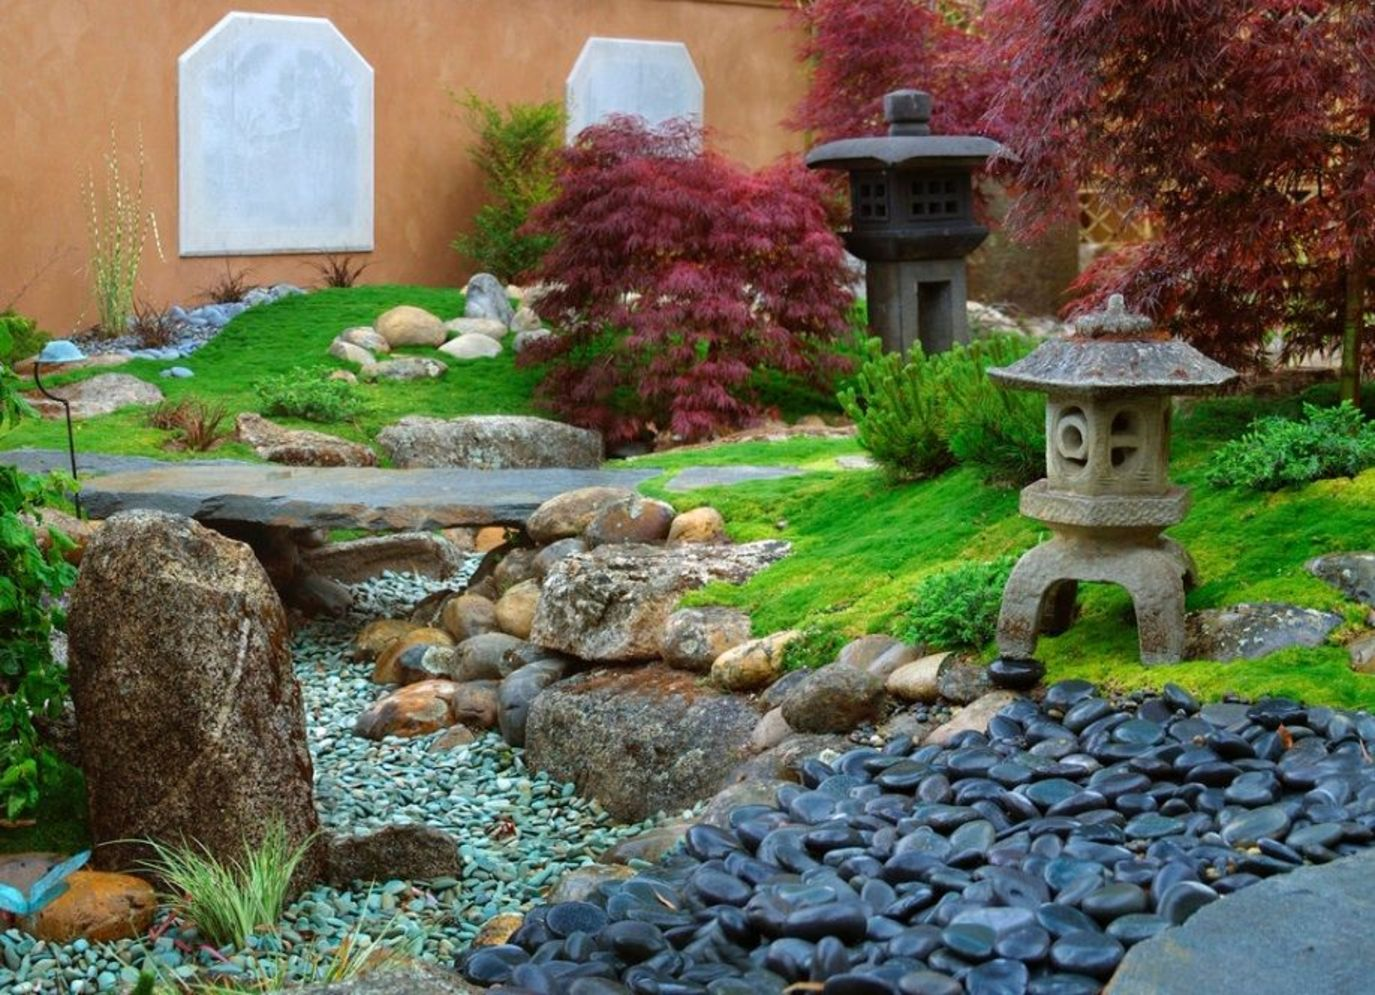 Beautiful Zen garden style with peaceful arrangements creating peaceful and harmonies display that will calm our mind Image 7